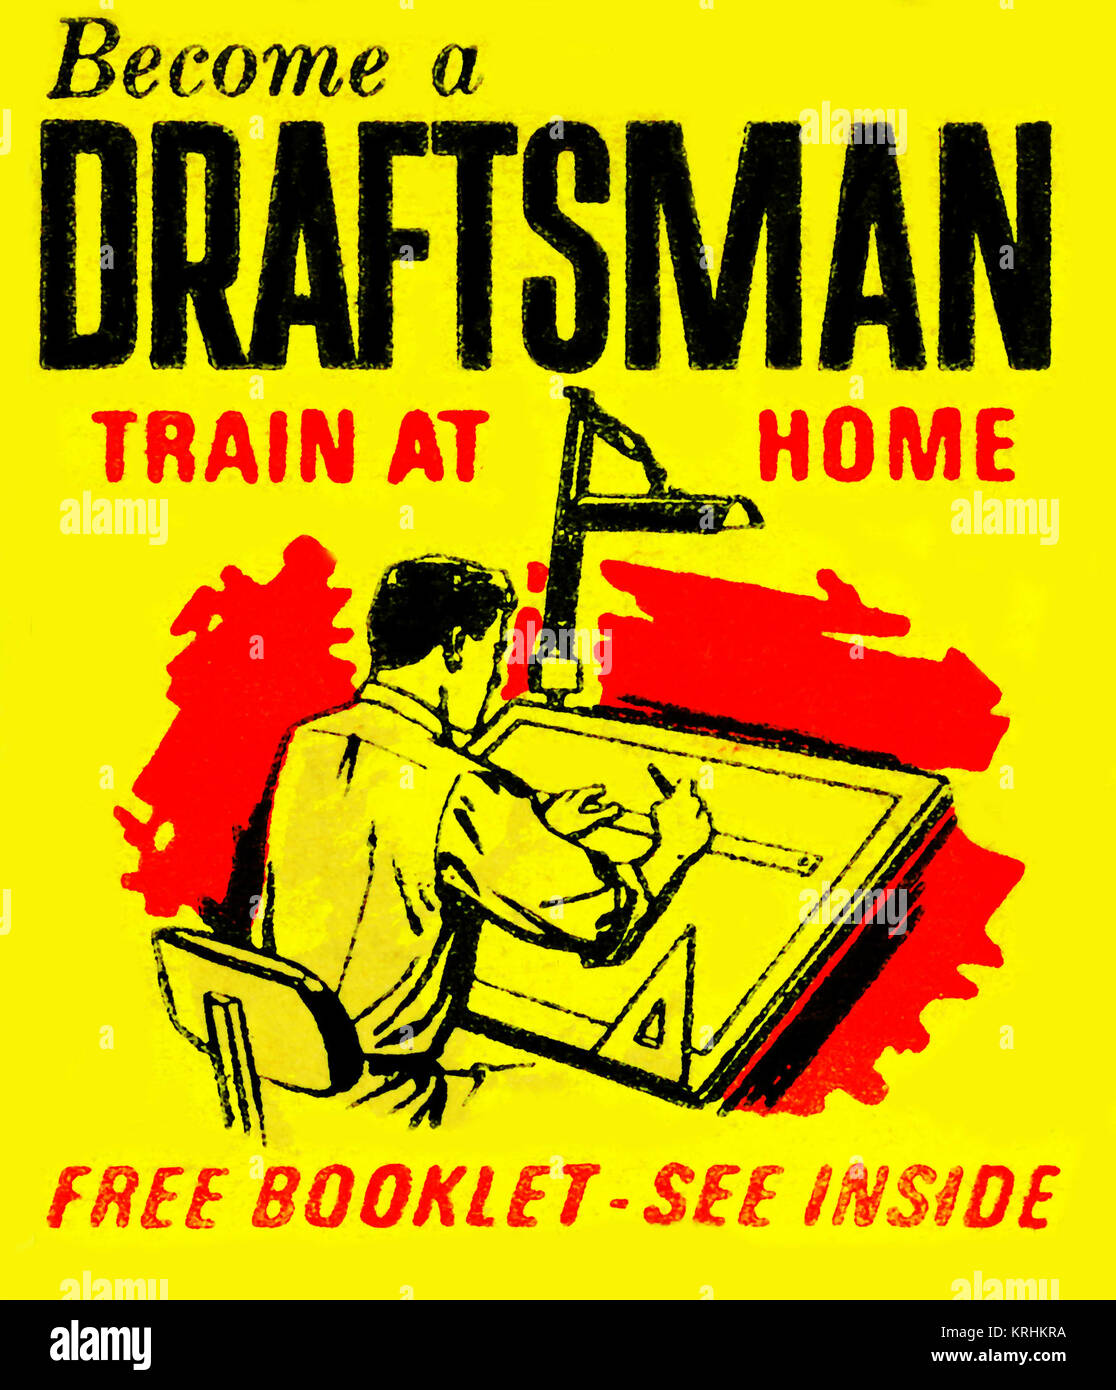 how to become a draftsman canada